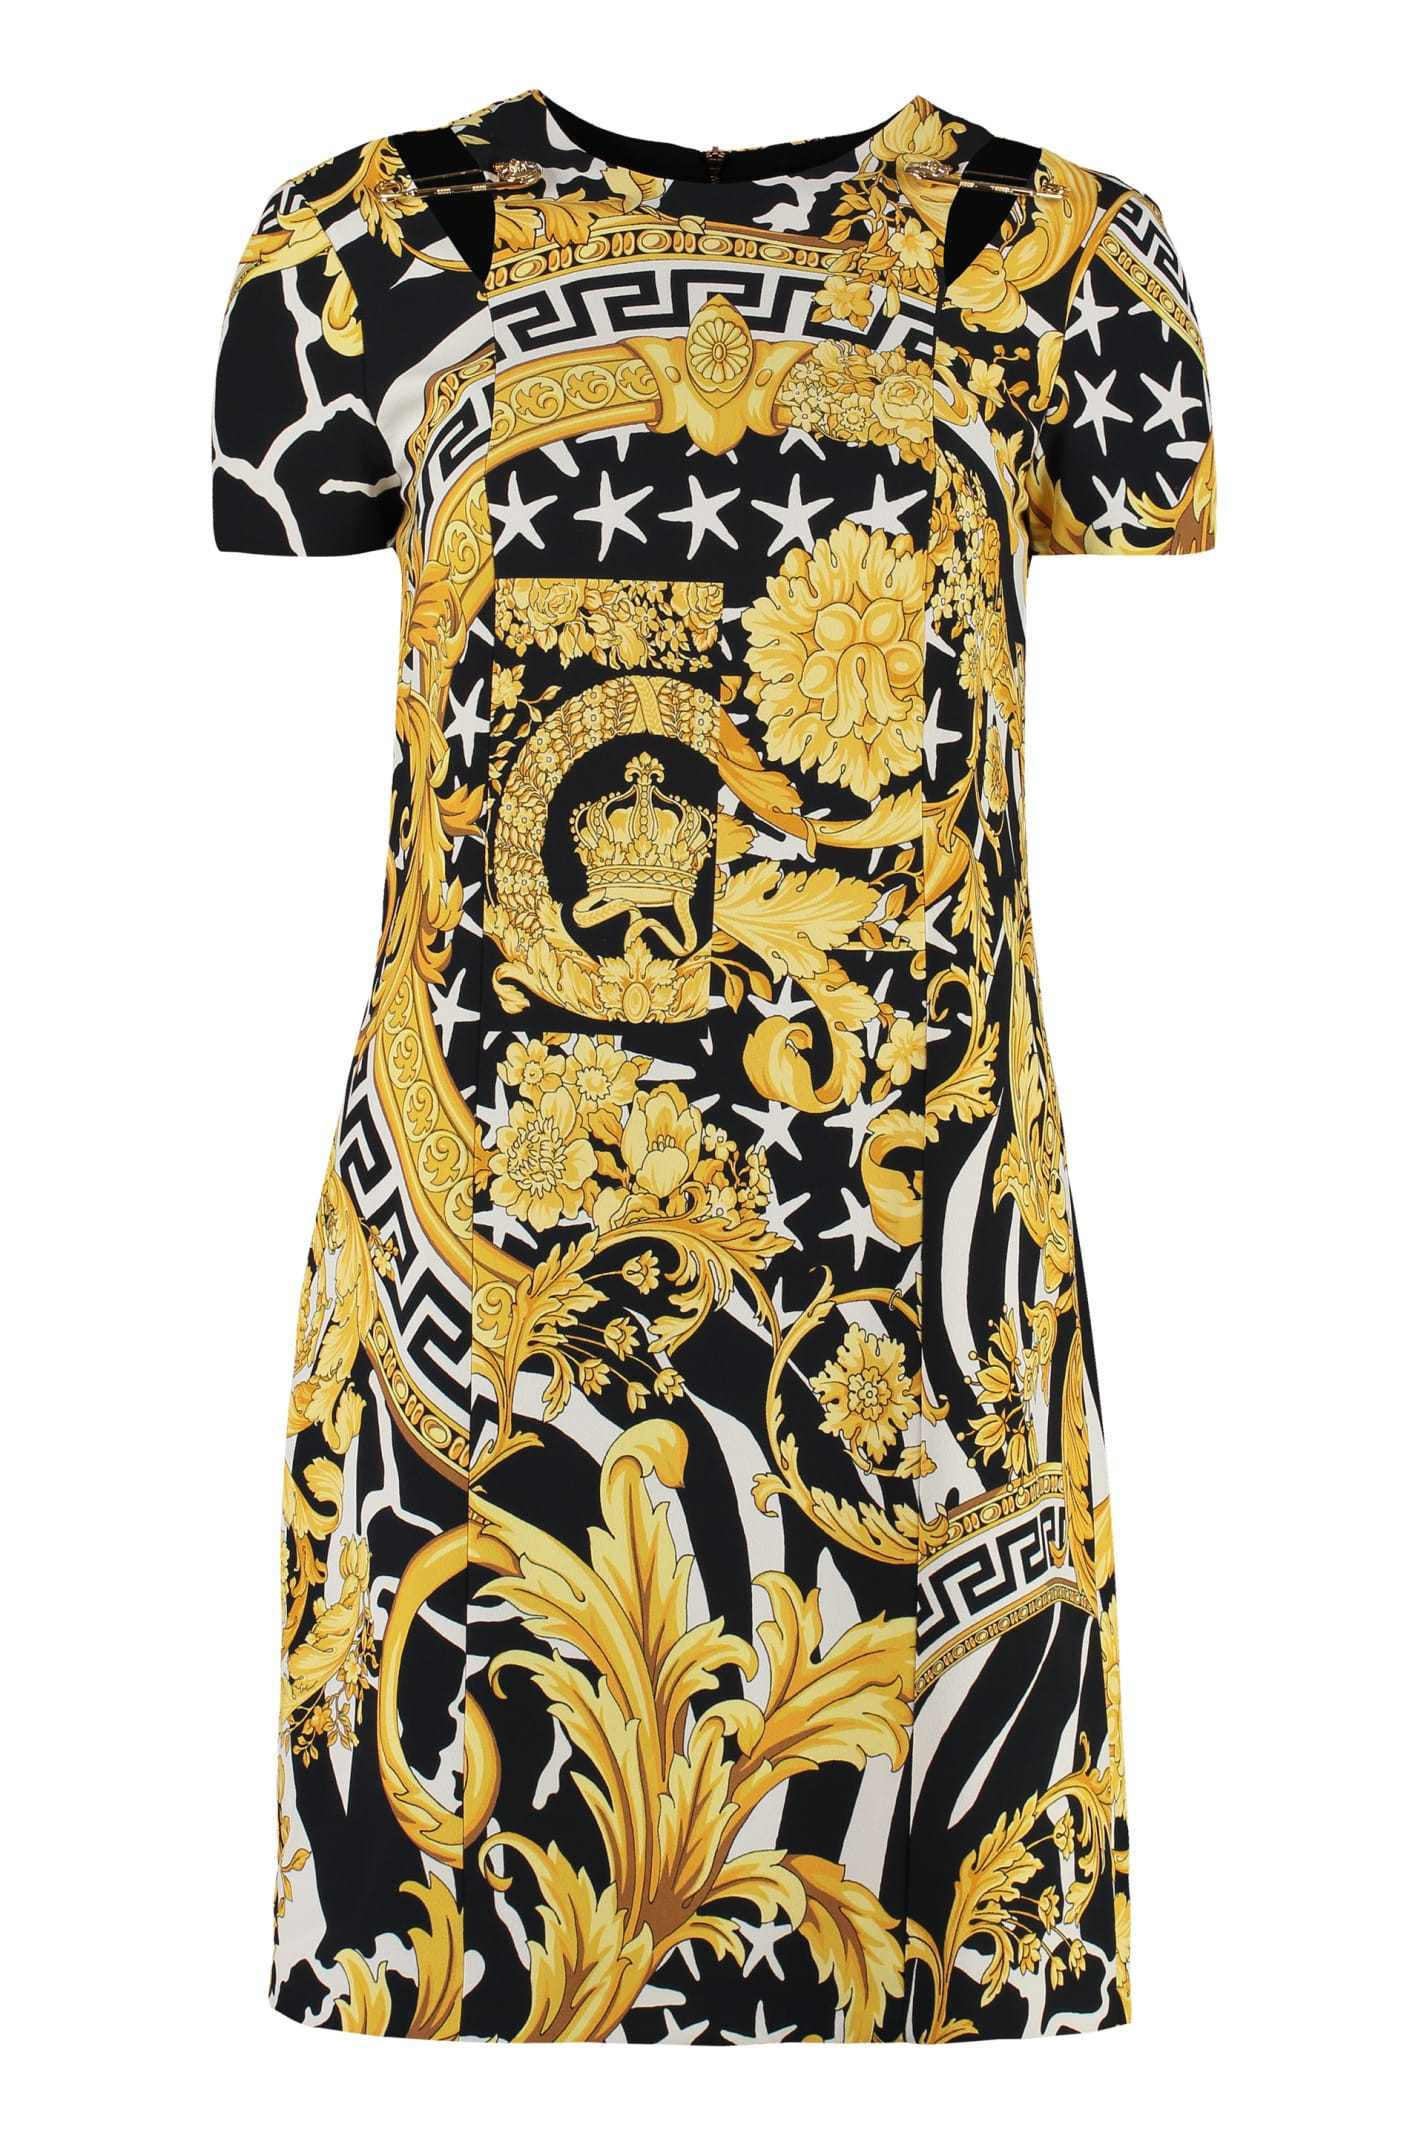 Versace Viscose Dress